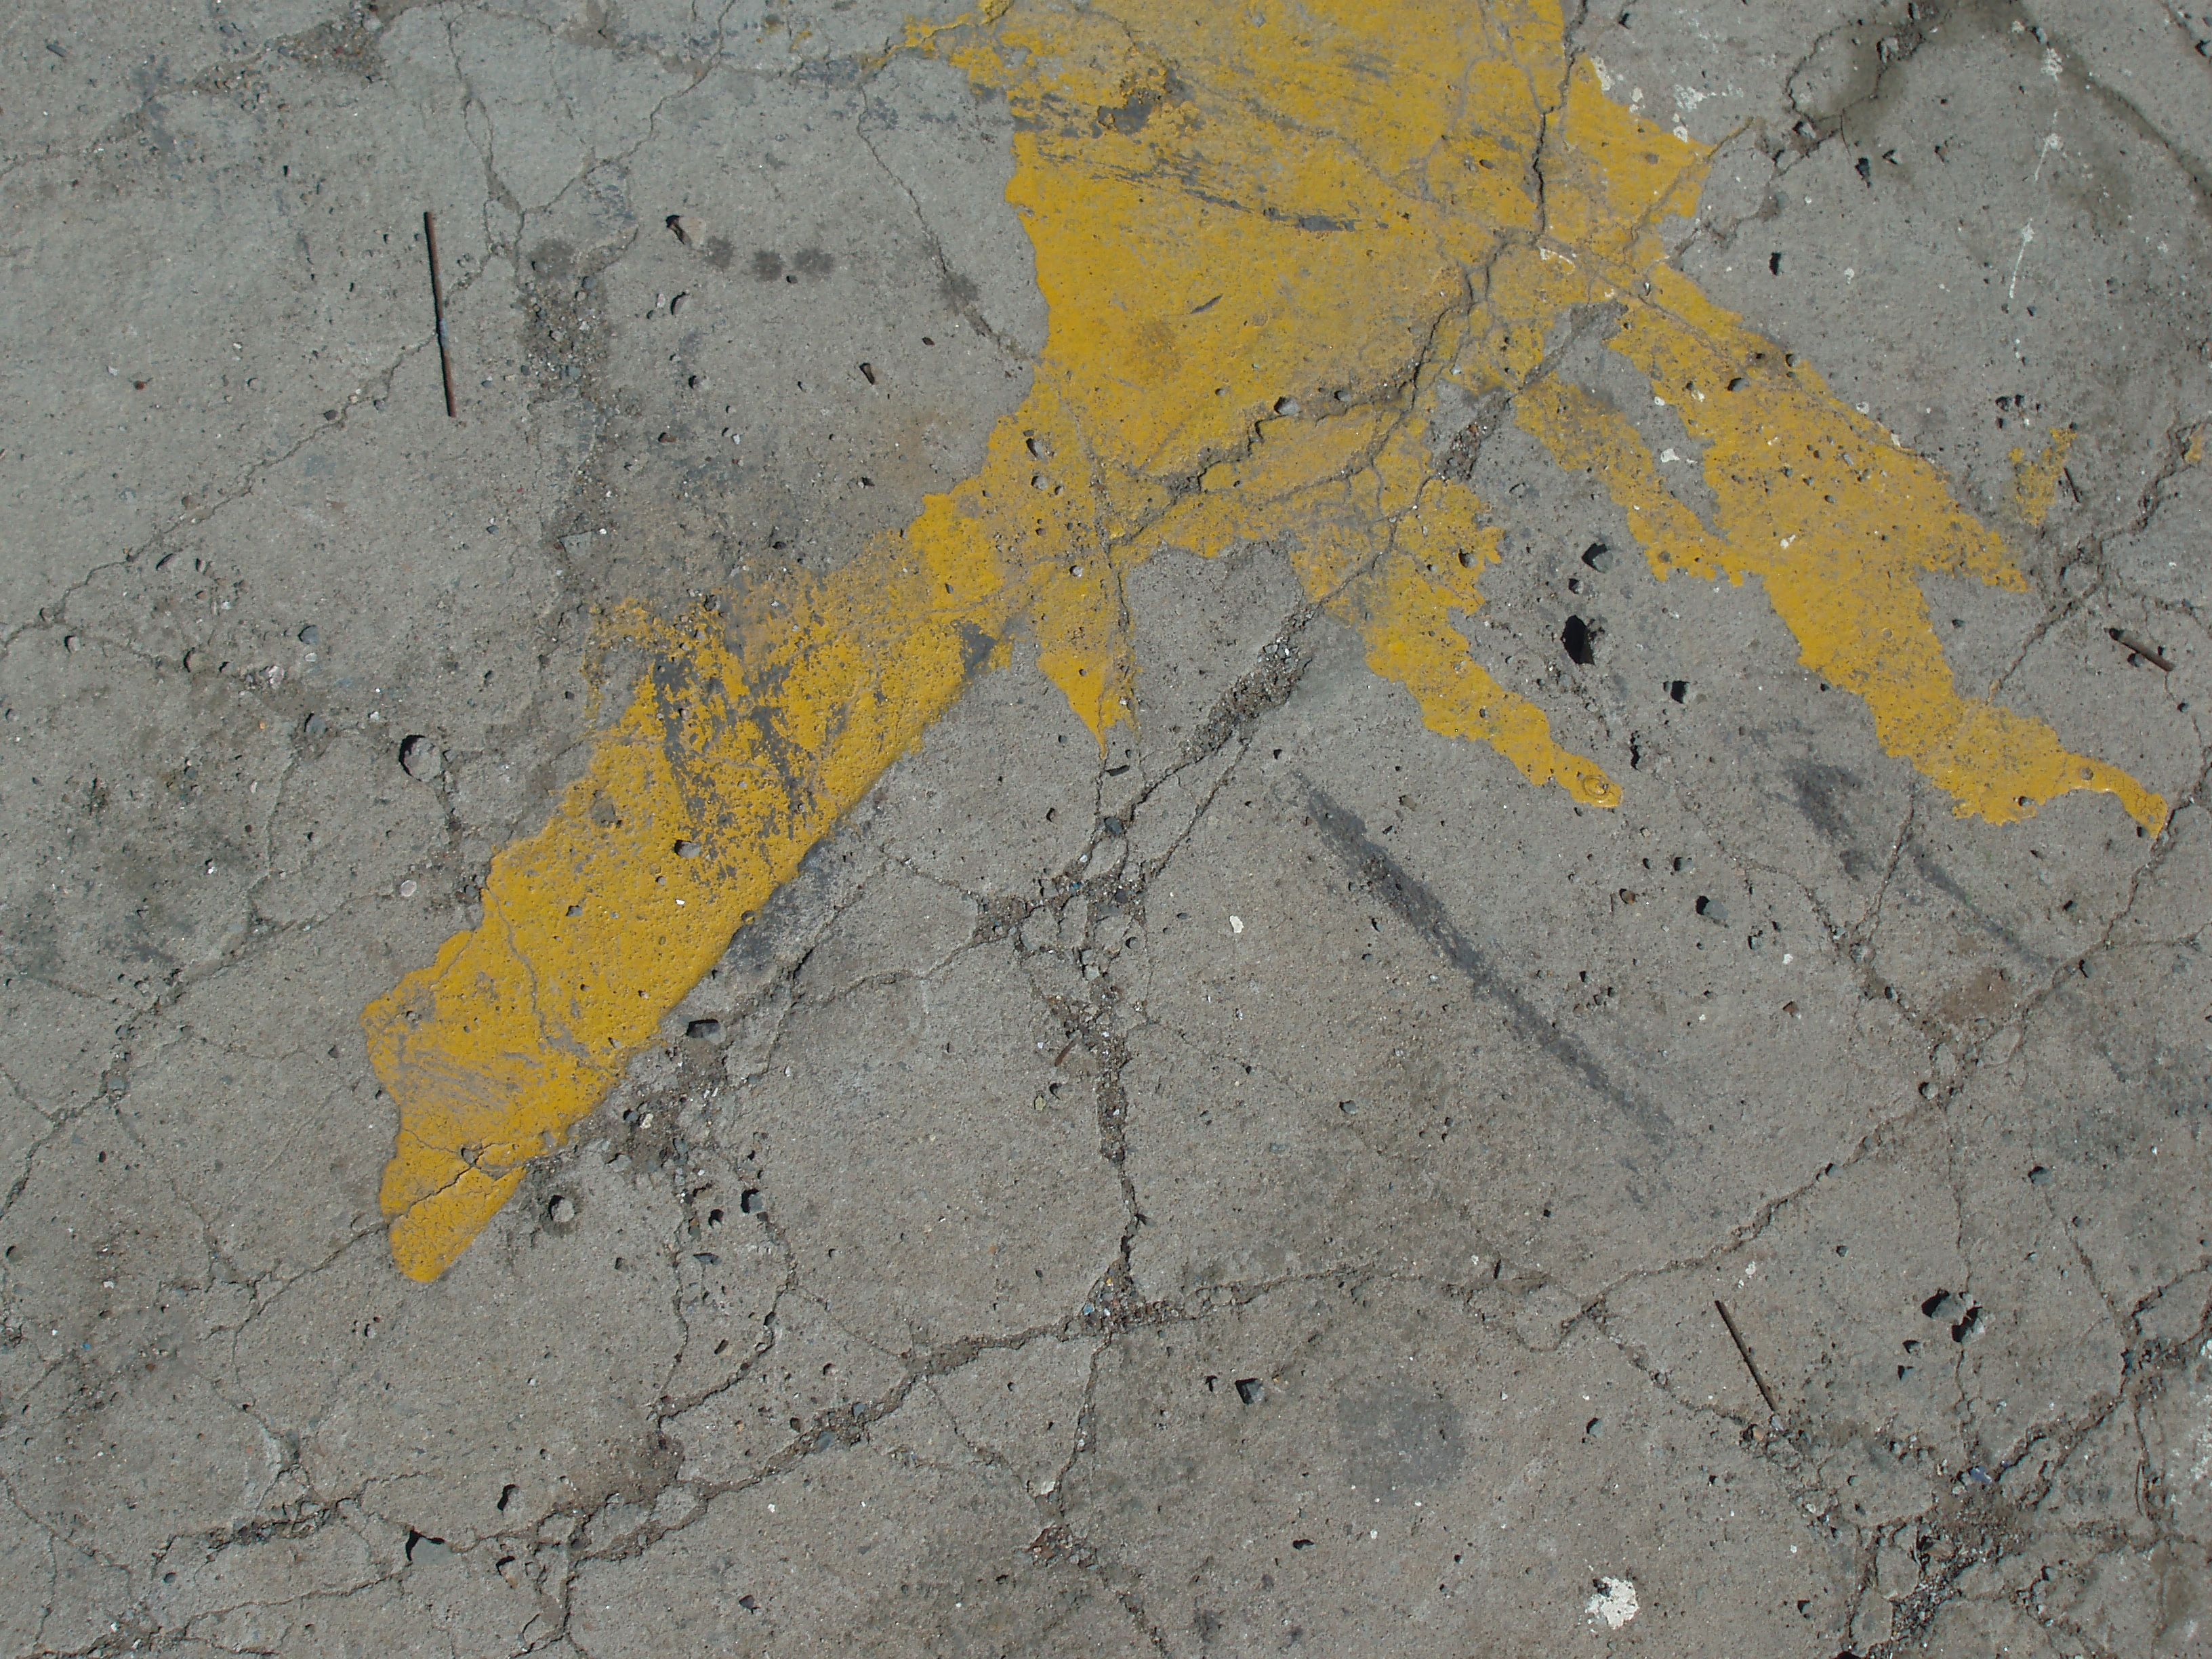 a splat of yellow paint on dry cracked earth